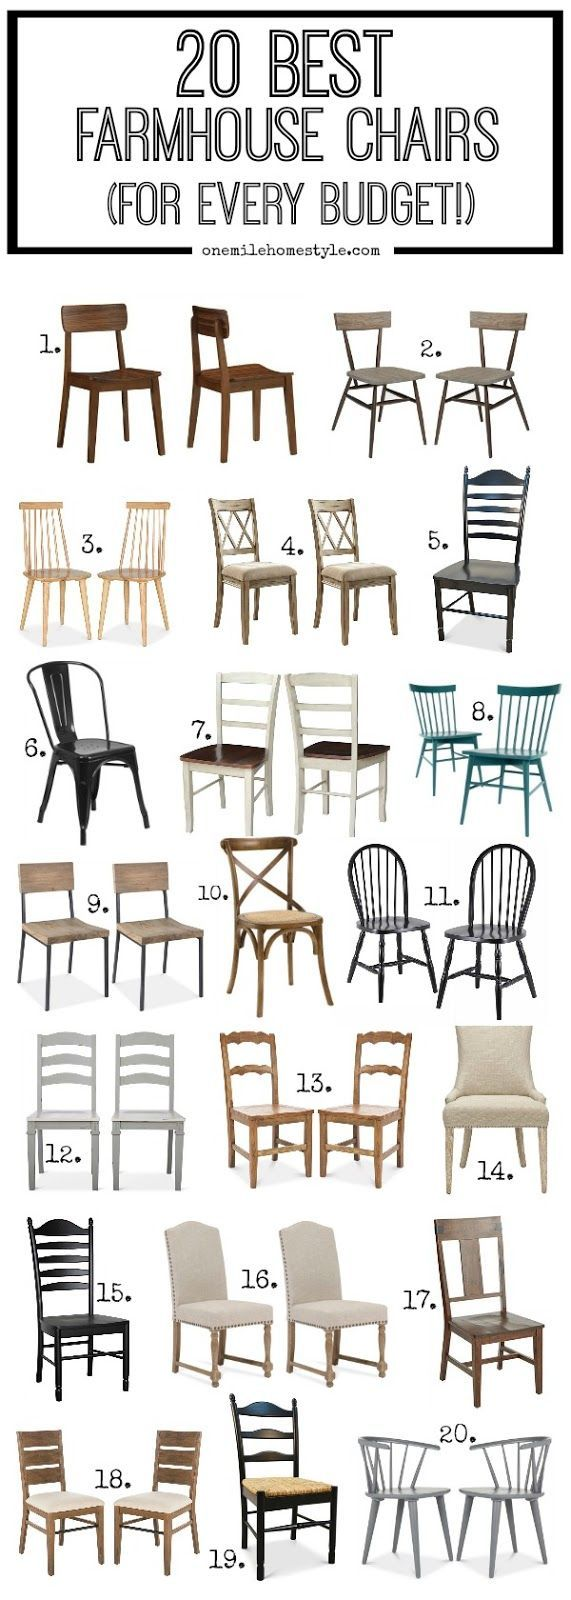 Add the perfect farmhouse touch to your kitchen with these top 20 farmhouse style chairs!